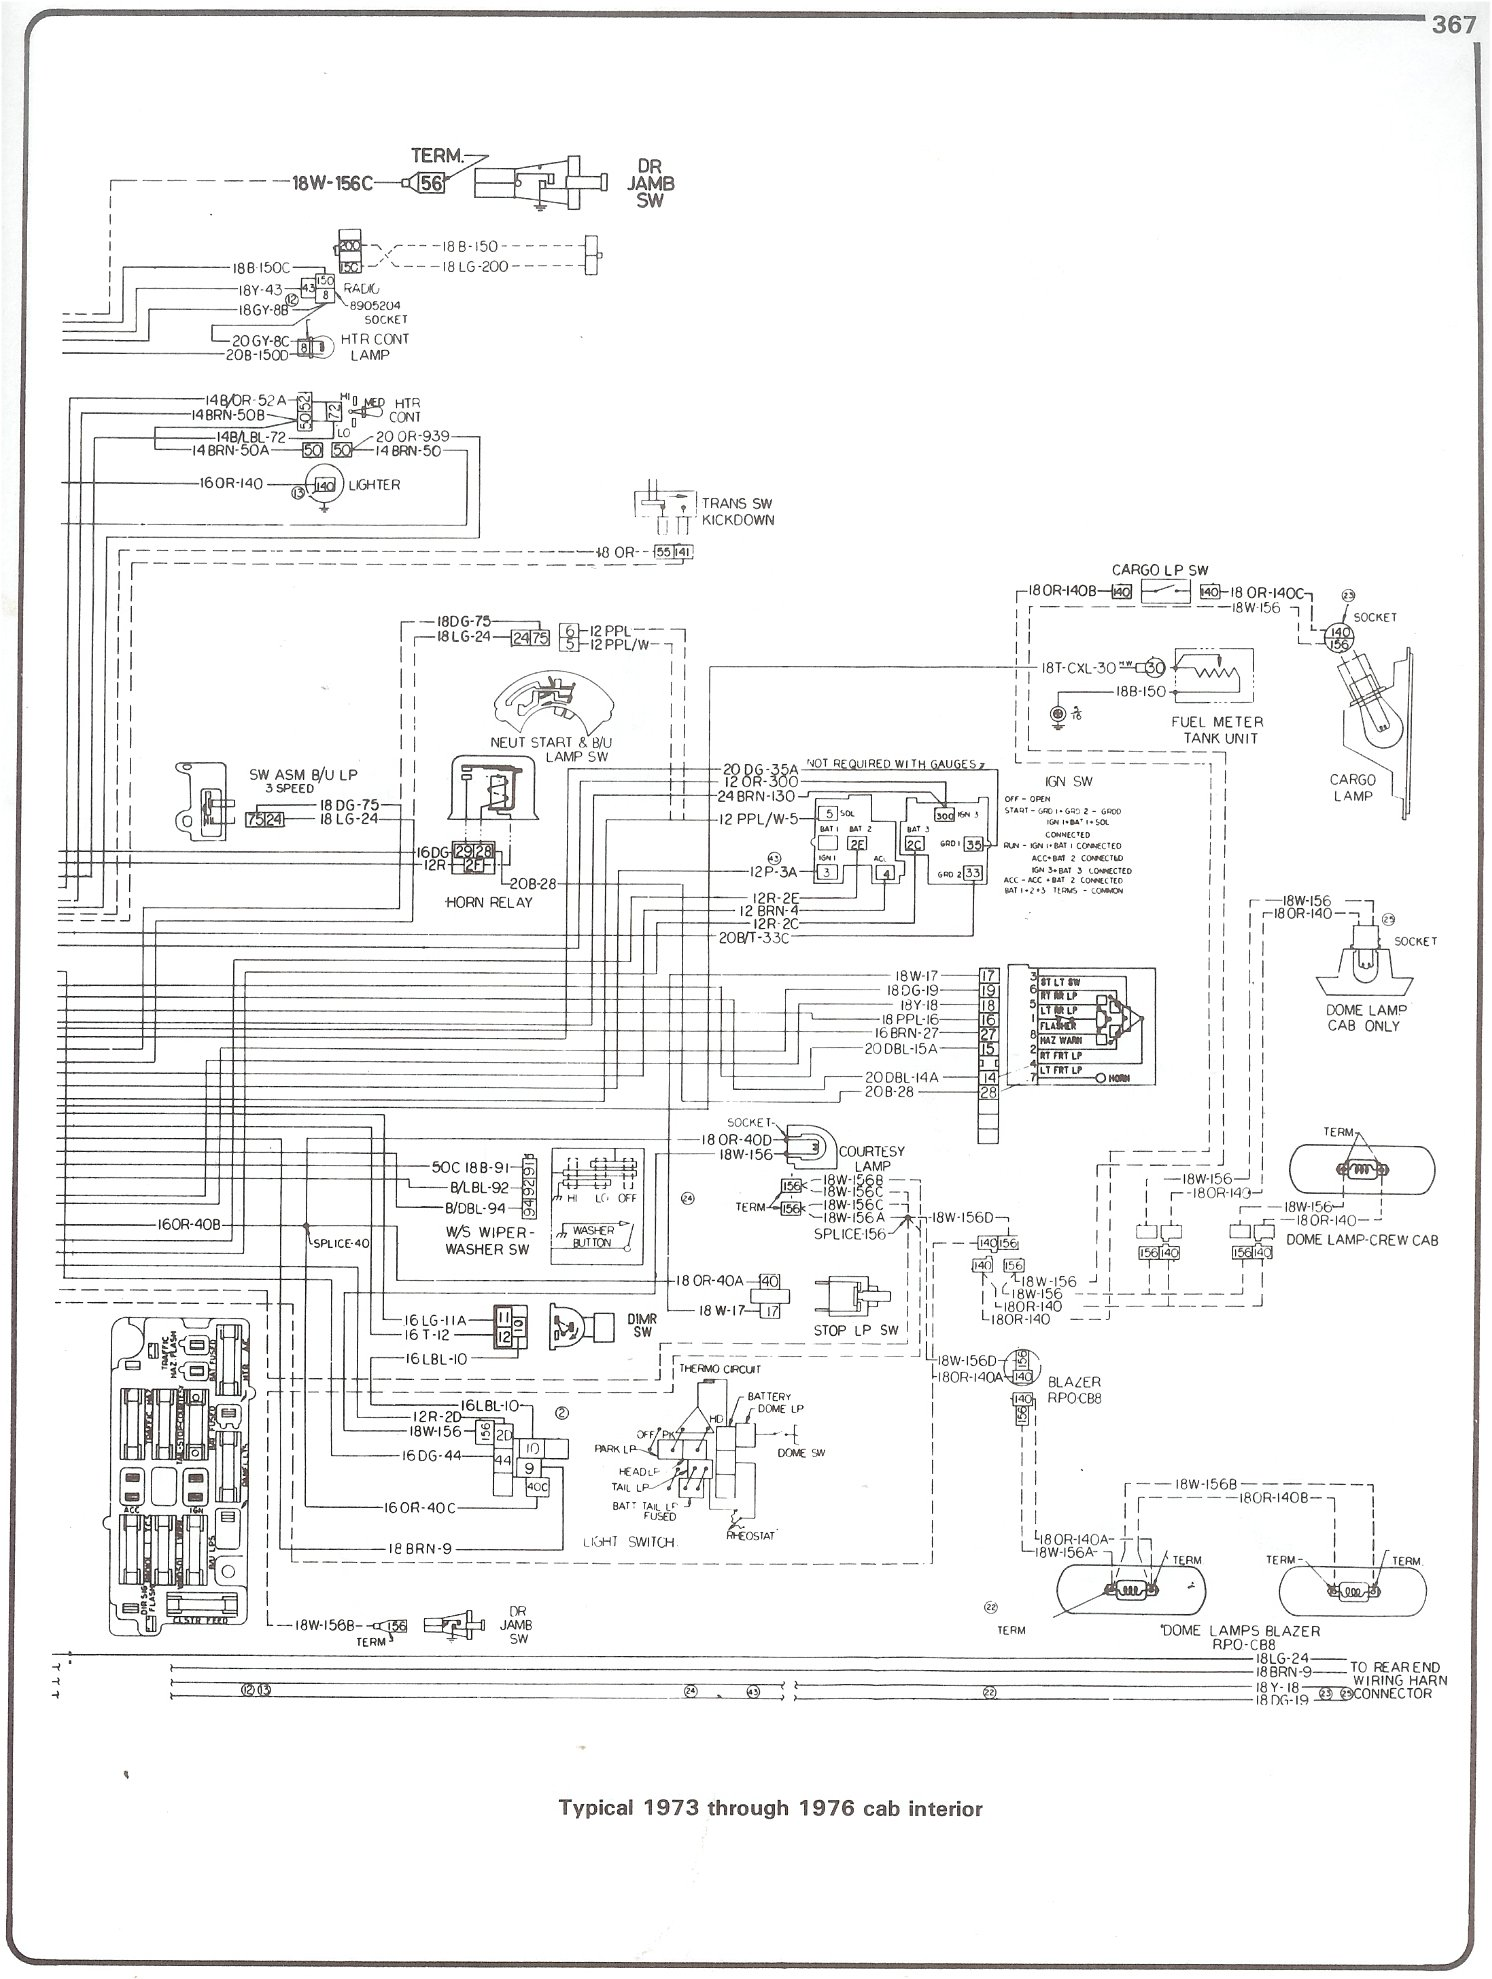 73 76_cab_inter complete 73 87 wiring diagrams 1988 chevy s10 wiring diagram at bayanpartner.co